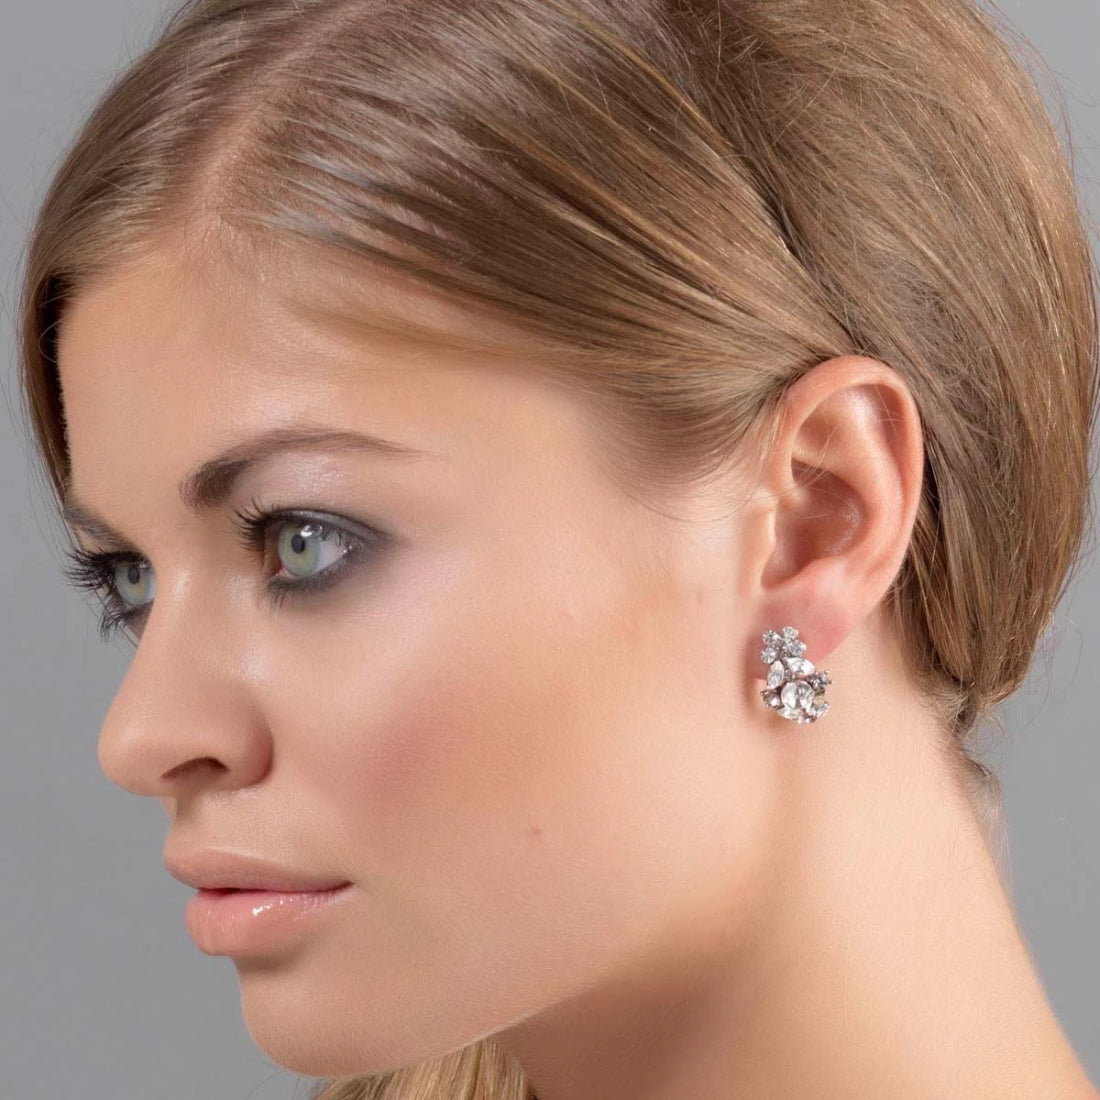 Model wears Forever Vintage Grey Crystal Clip On Earrings